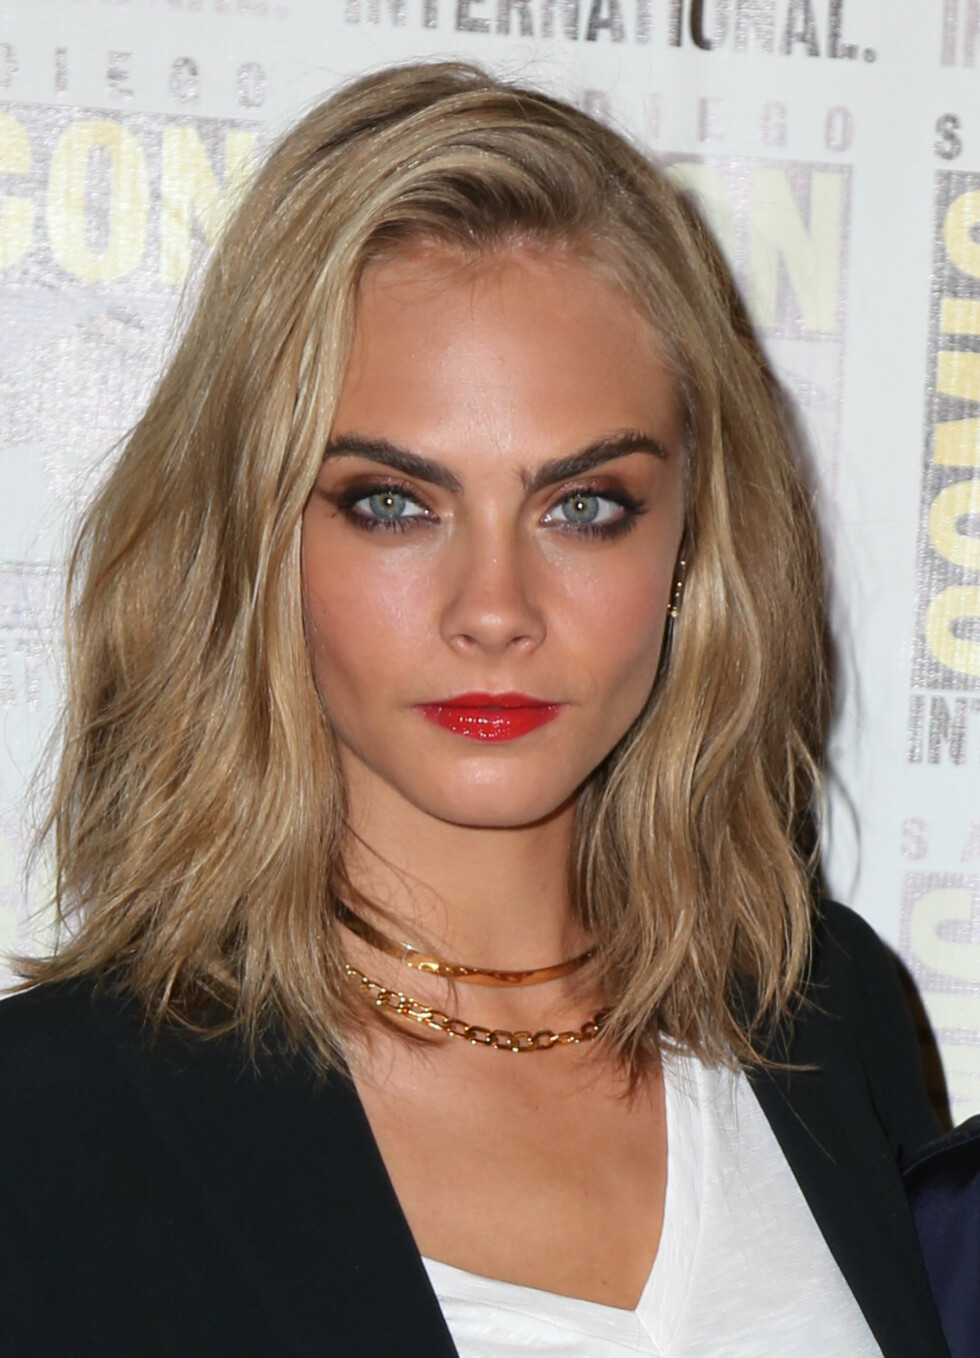 Cara Delevingne (24) Foto: Splash News